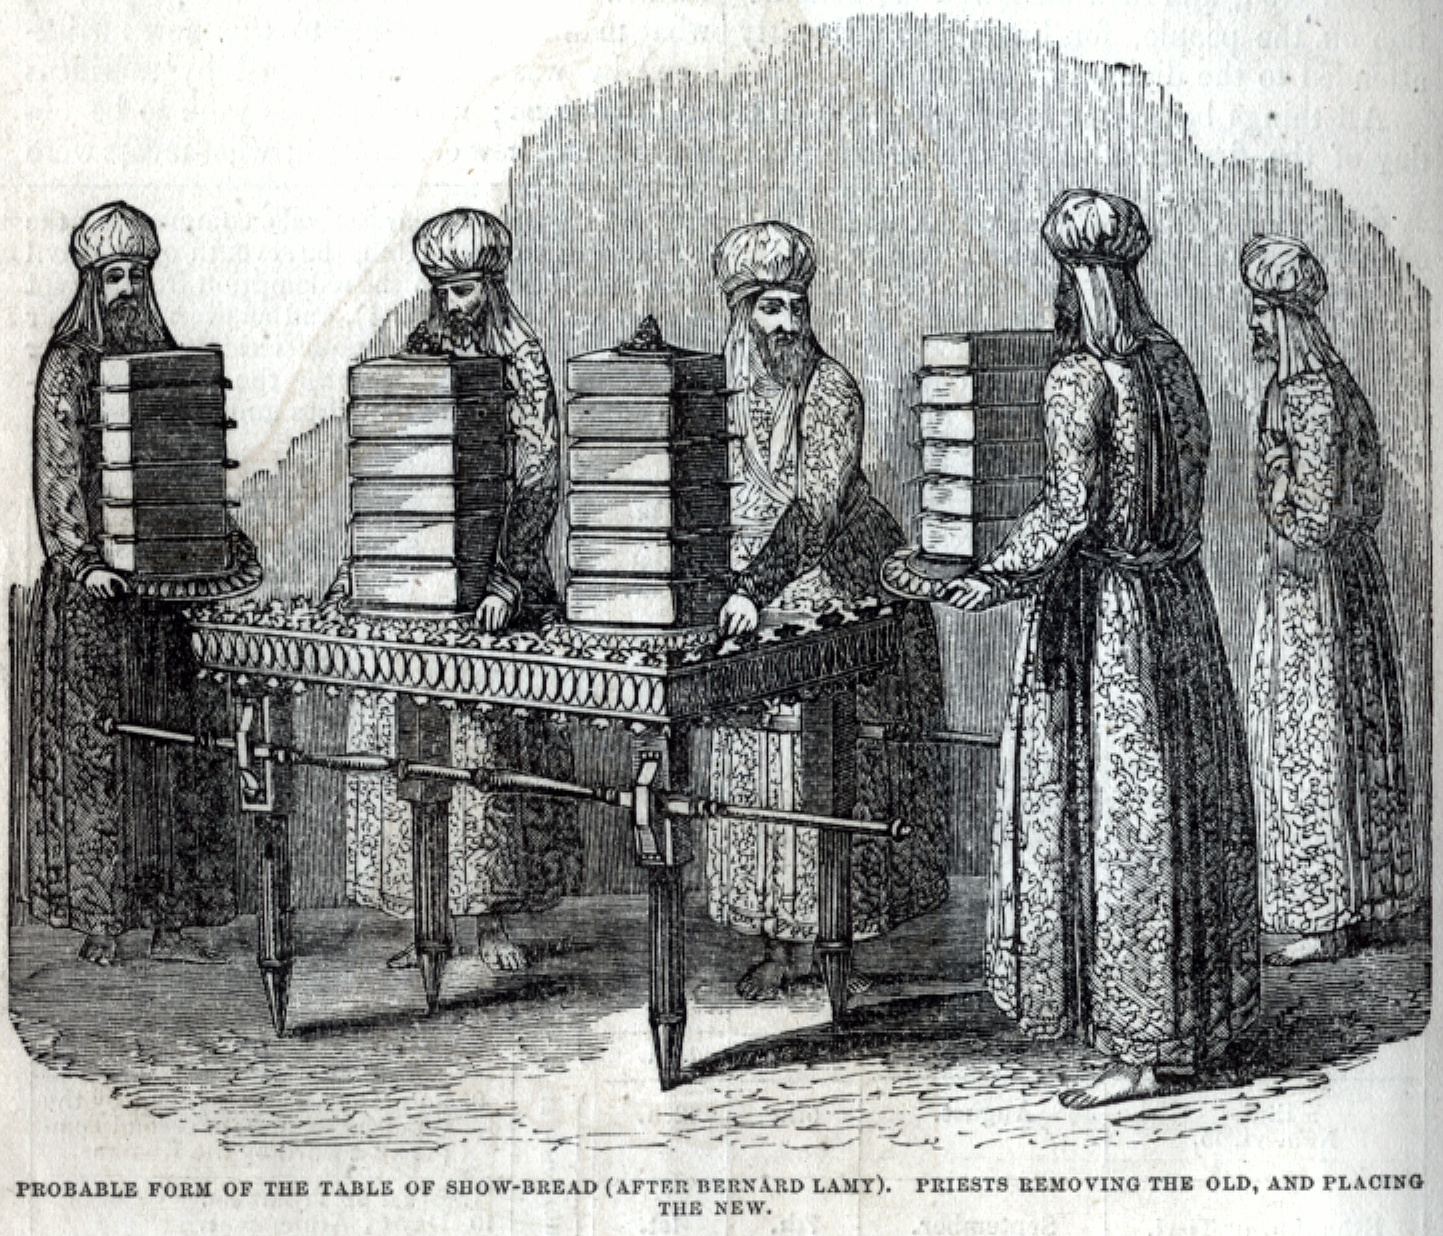 Probable form of the Table of Showbread - Priests removing the old and placing the new